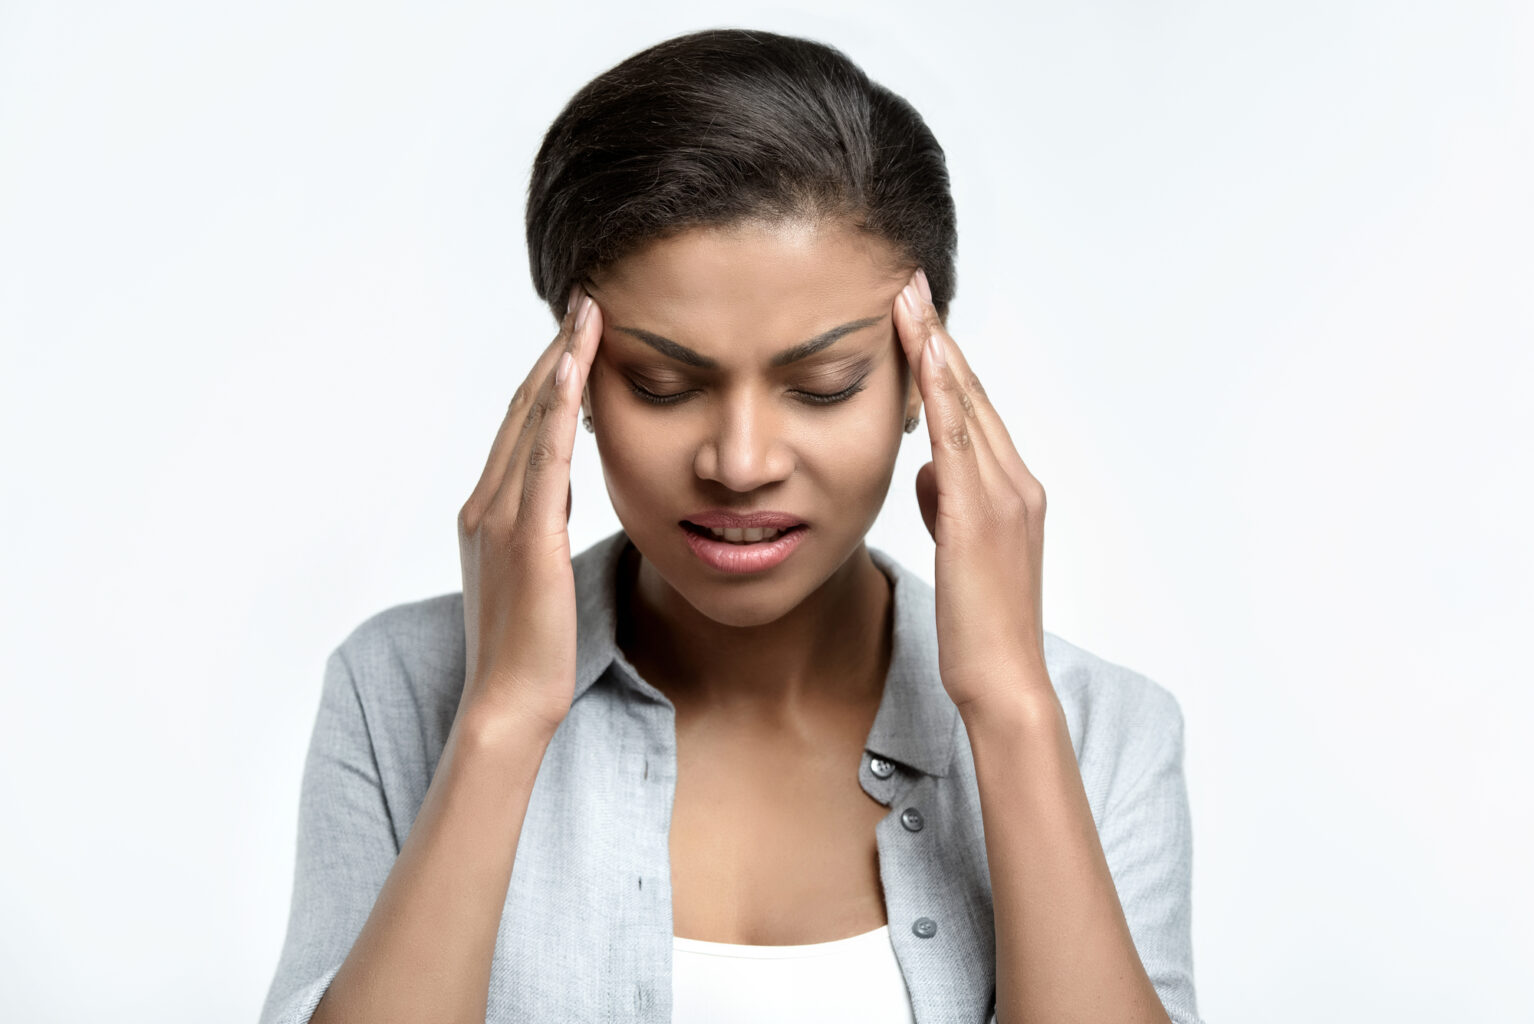 How can a dentist help with headaches?